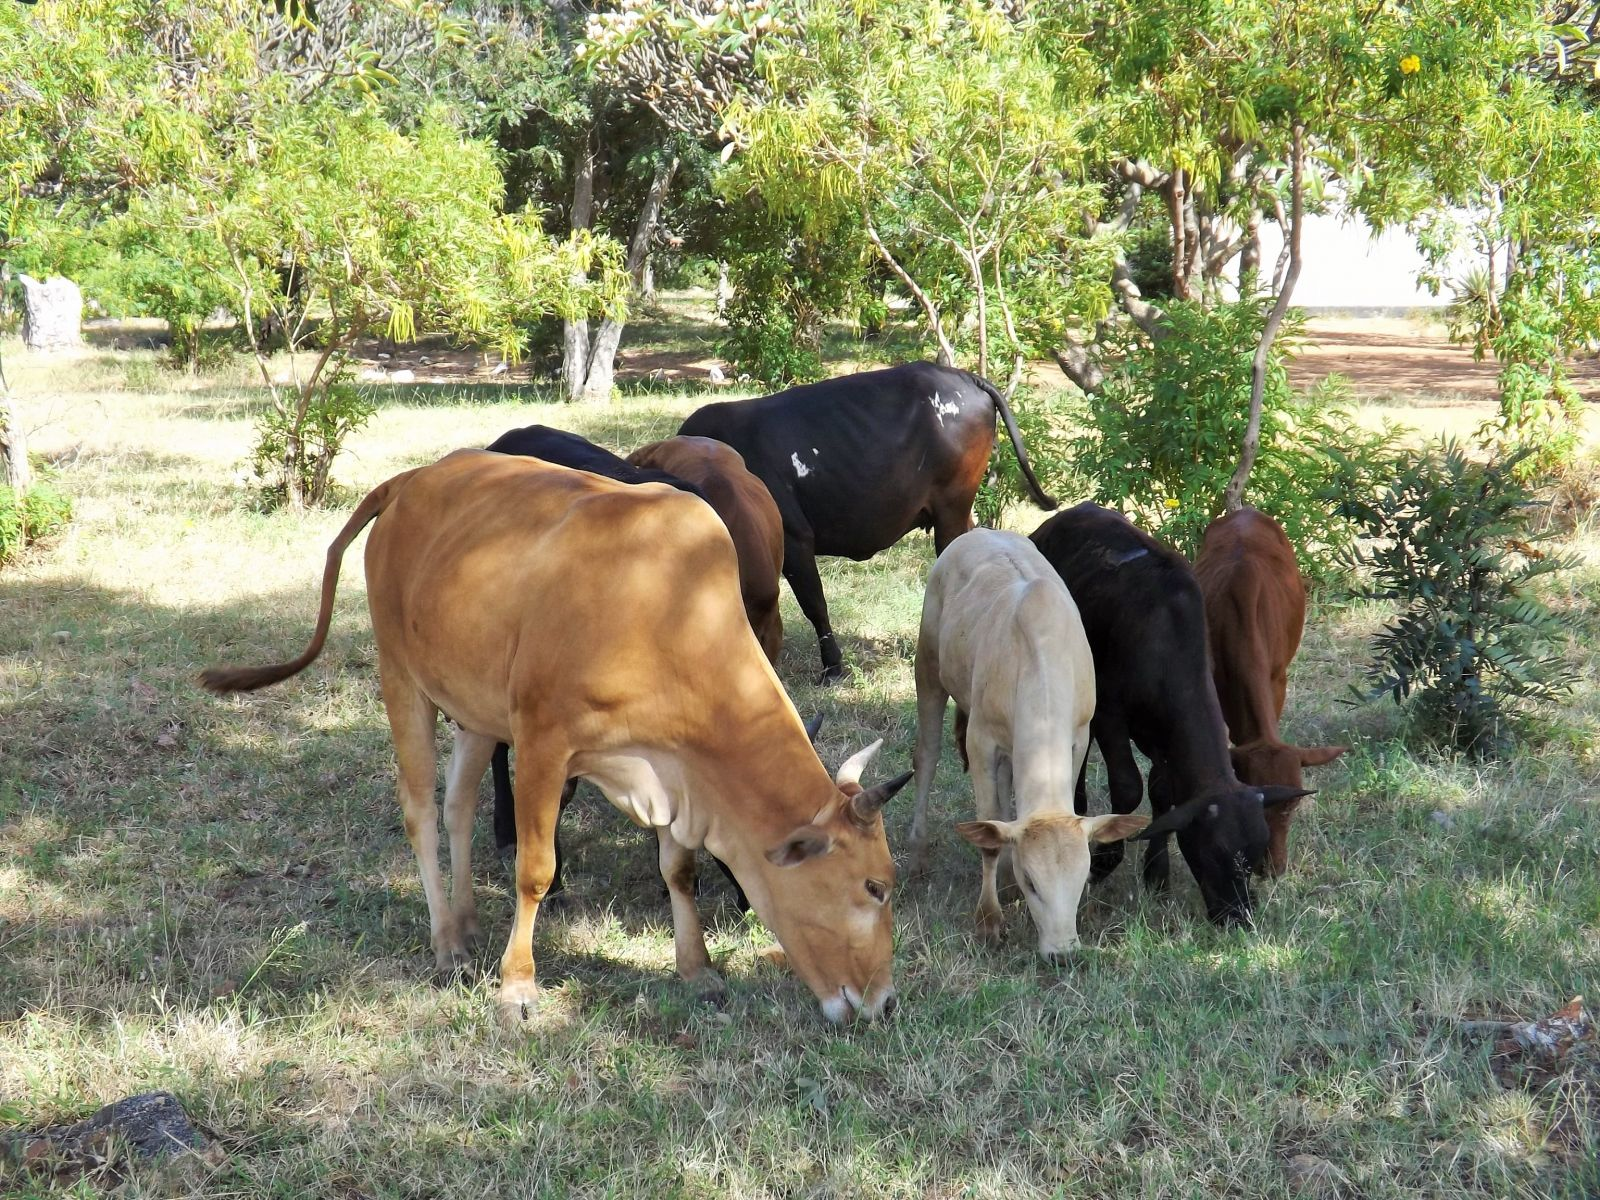 The Zebu cattle on the school grounds